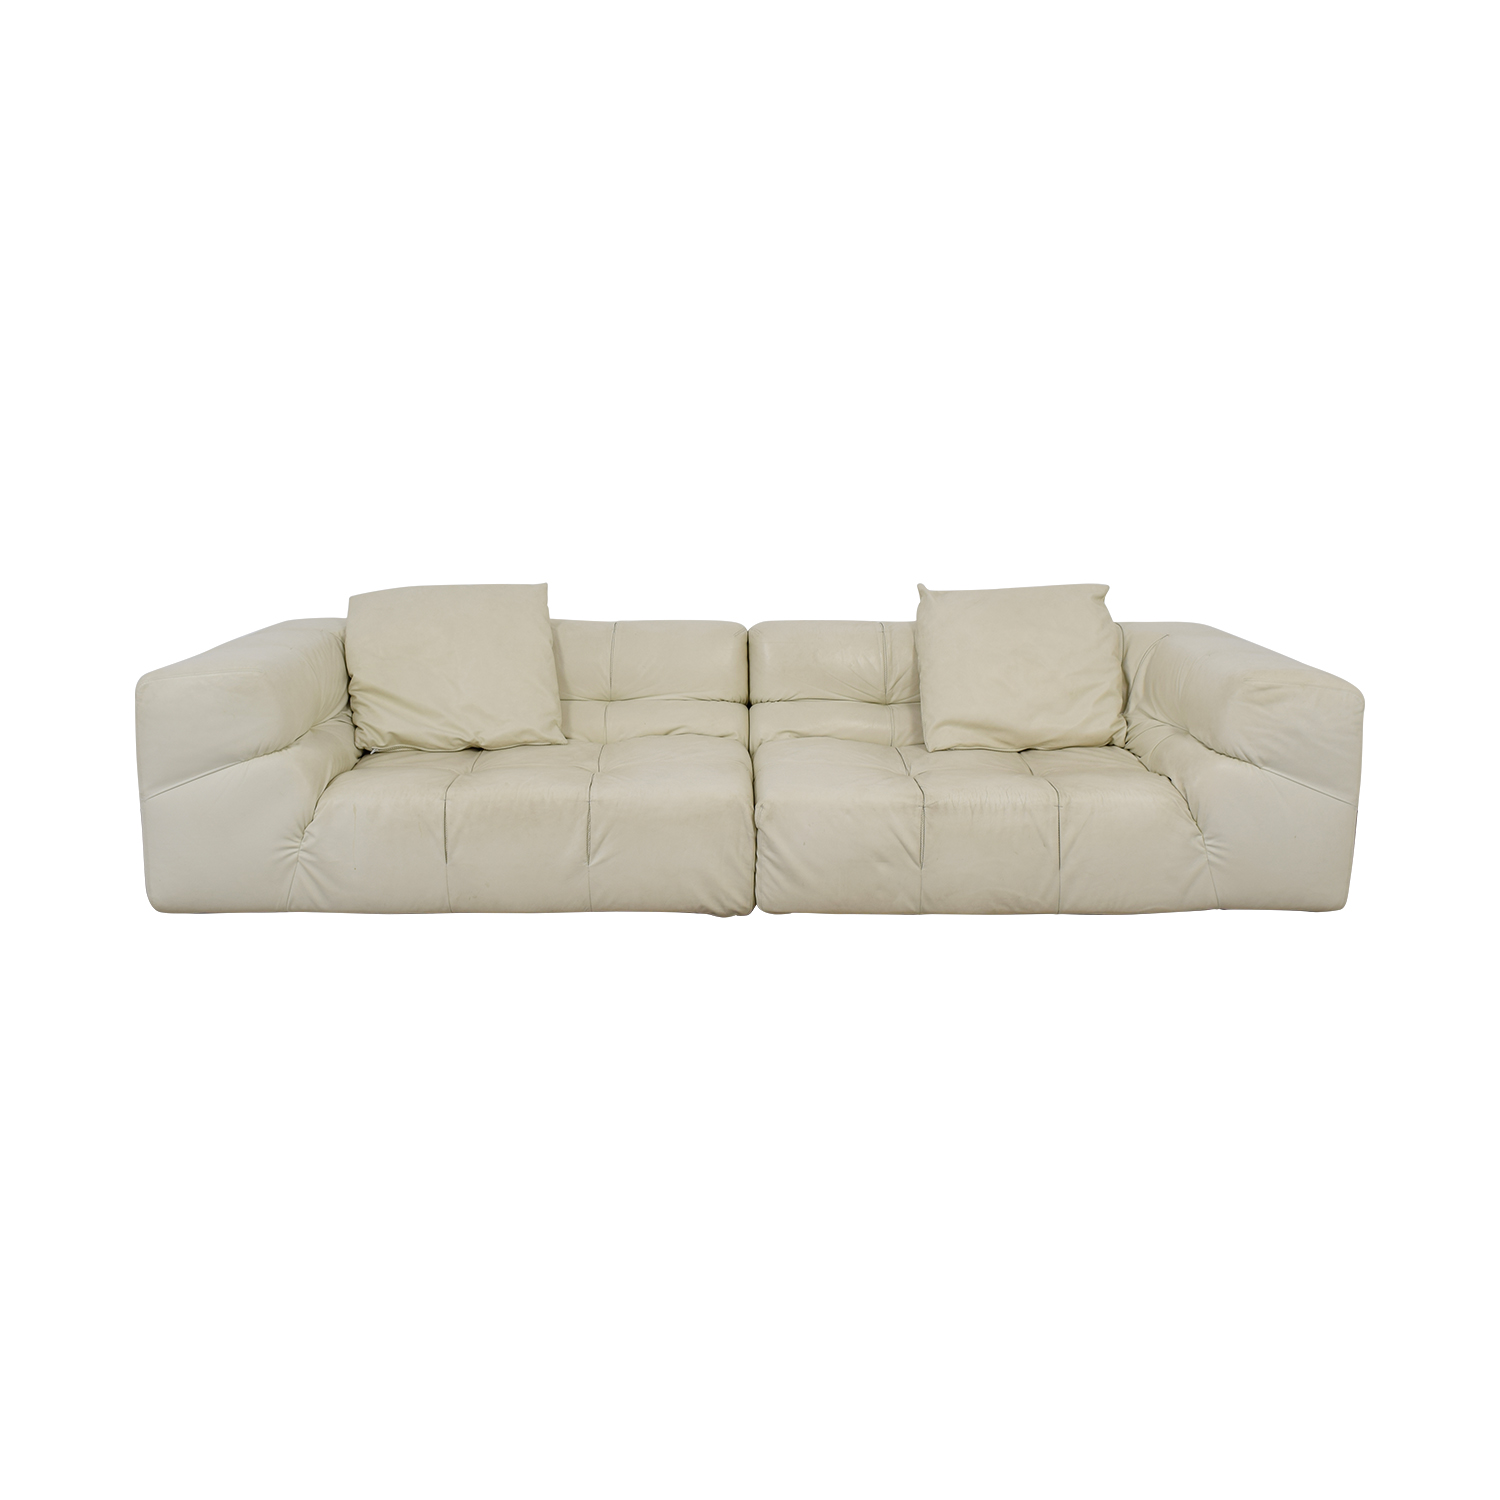 Ligne Roset Ligne Roset White Tufted Leather Couch discount